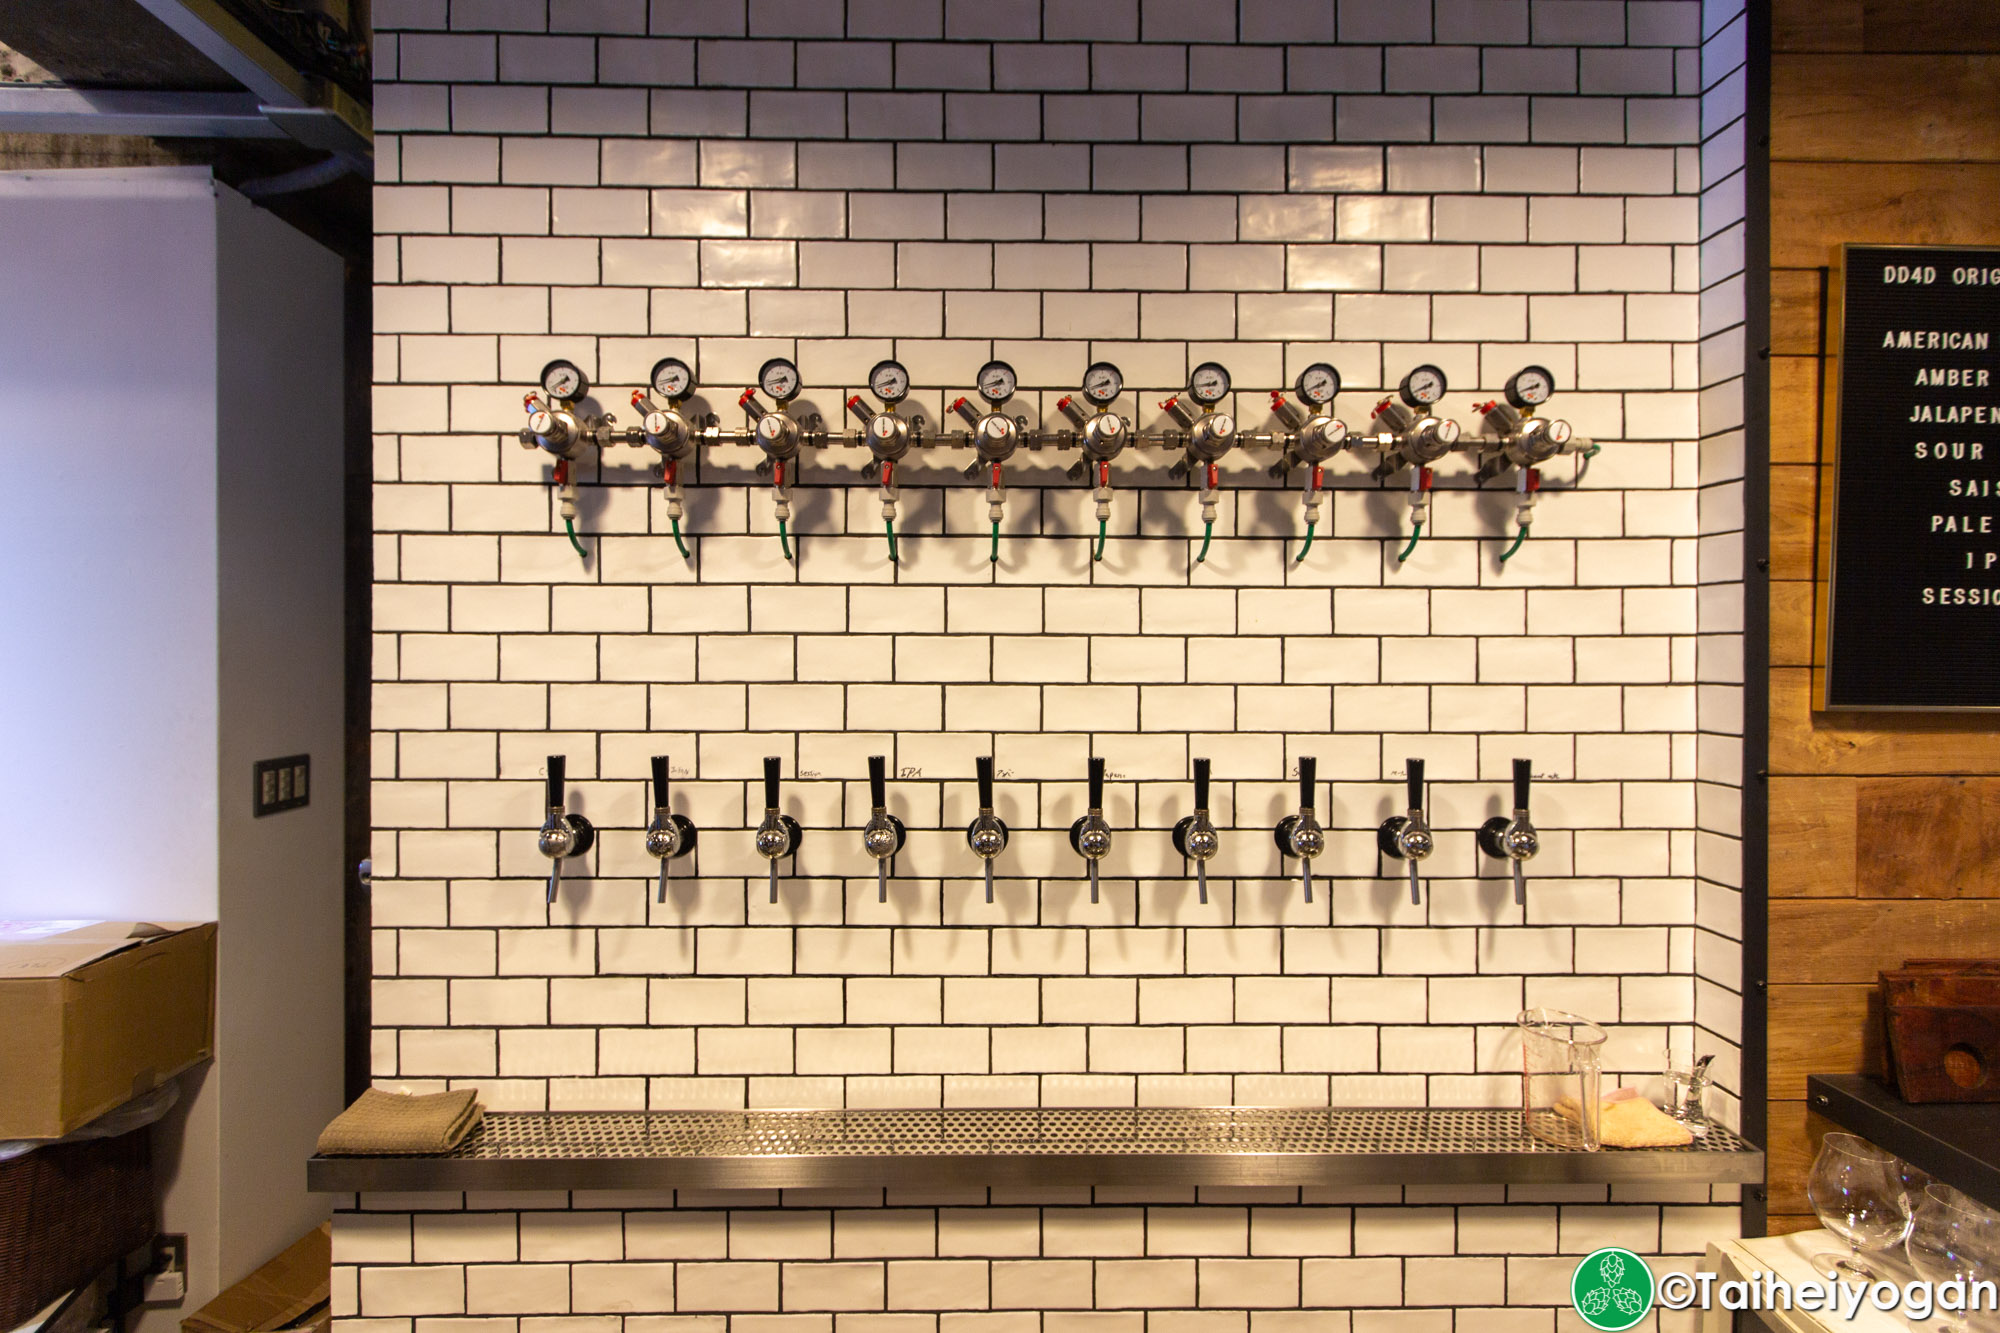 DD4D - Interior - Beer Taps